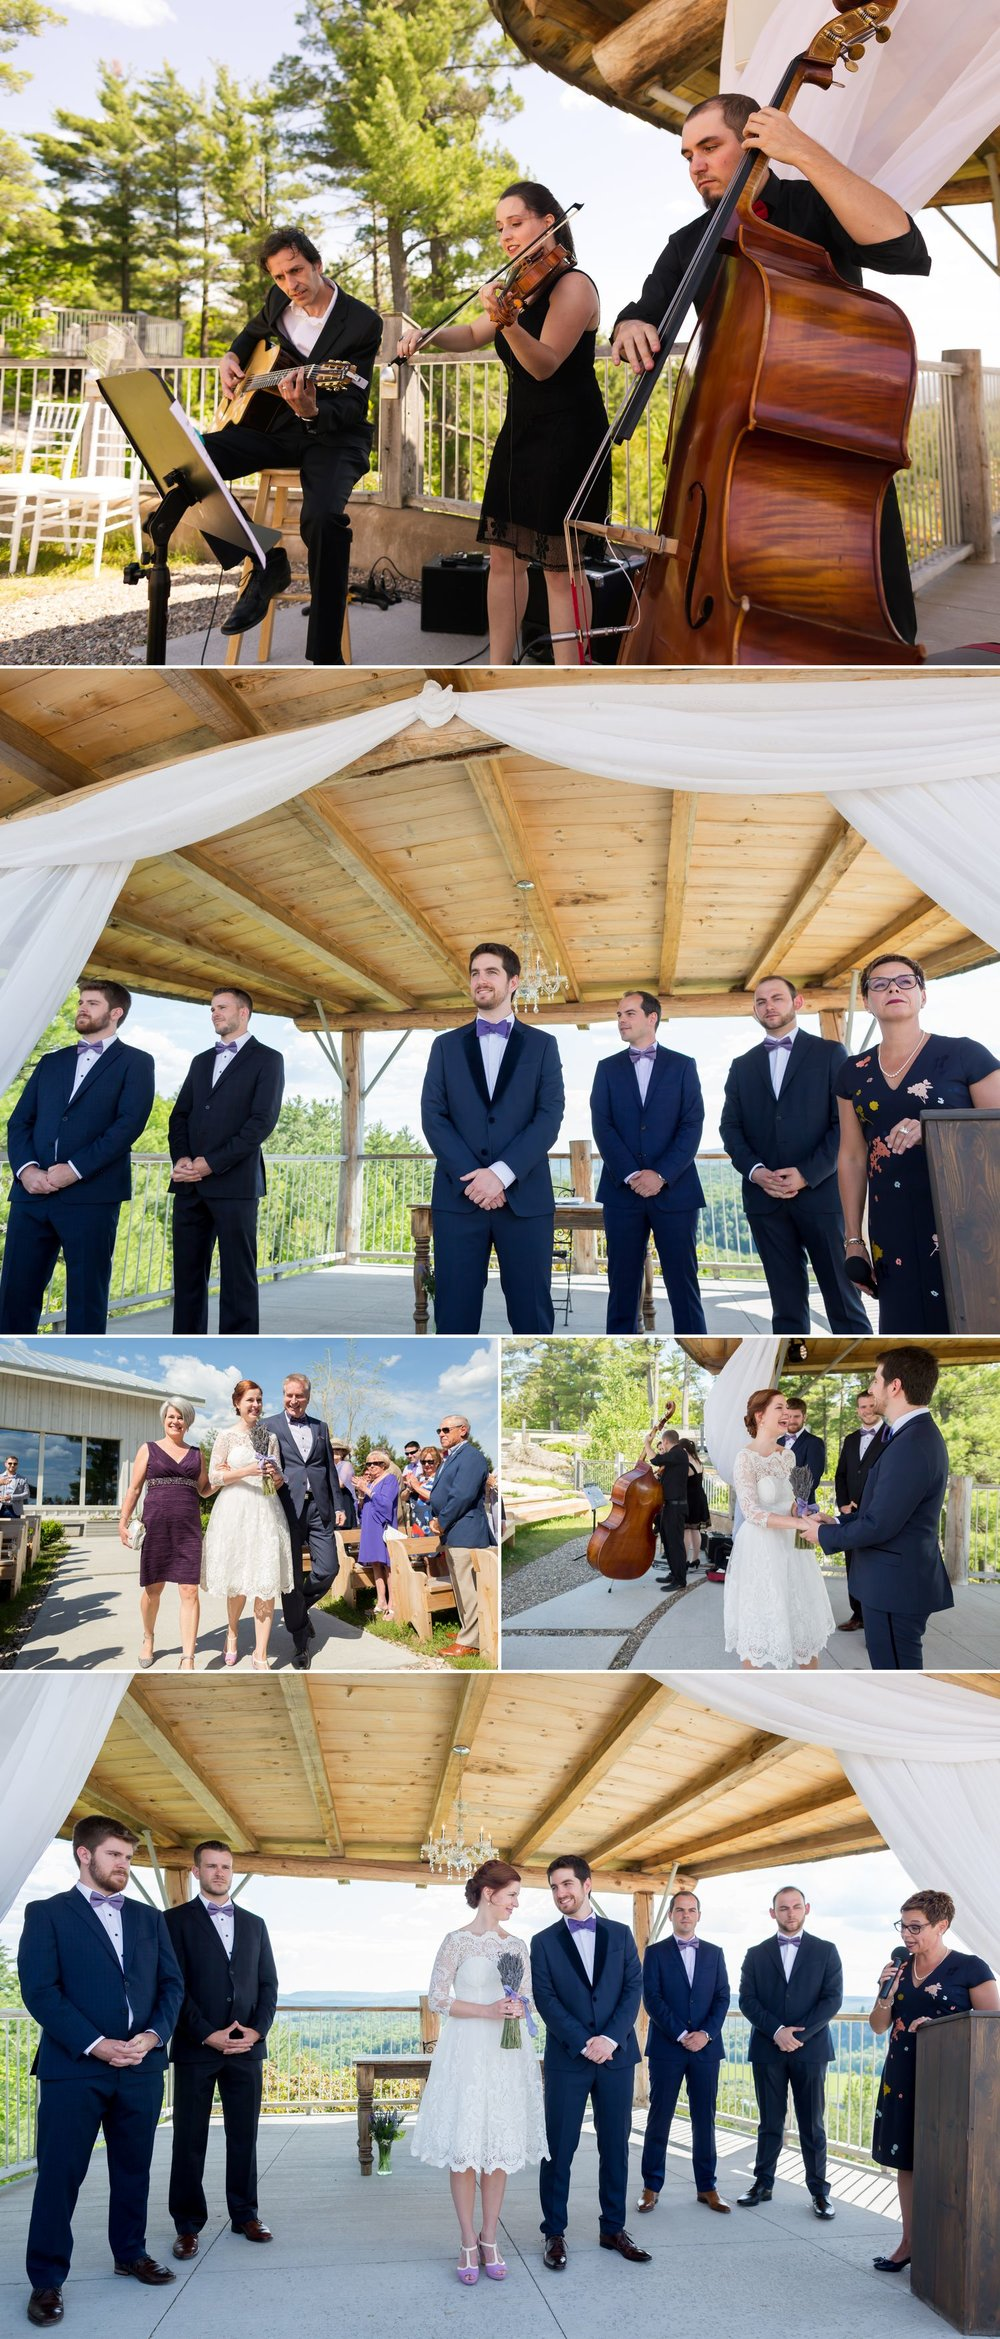 An outdoor summer wedding at Le Belvedere in Wakefield, Quebec